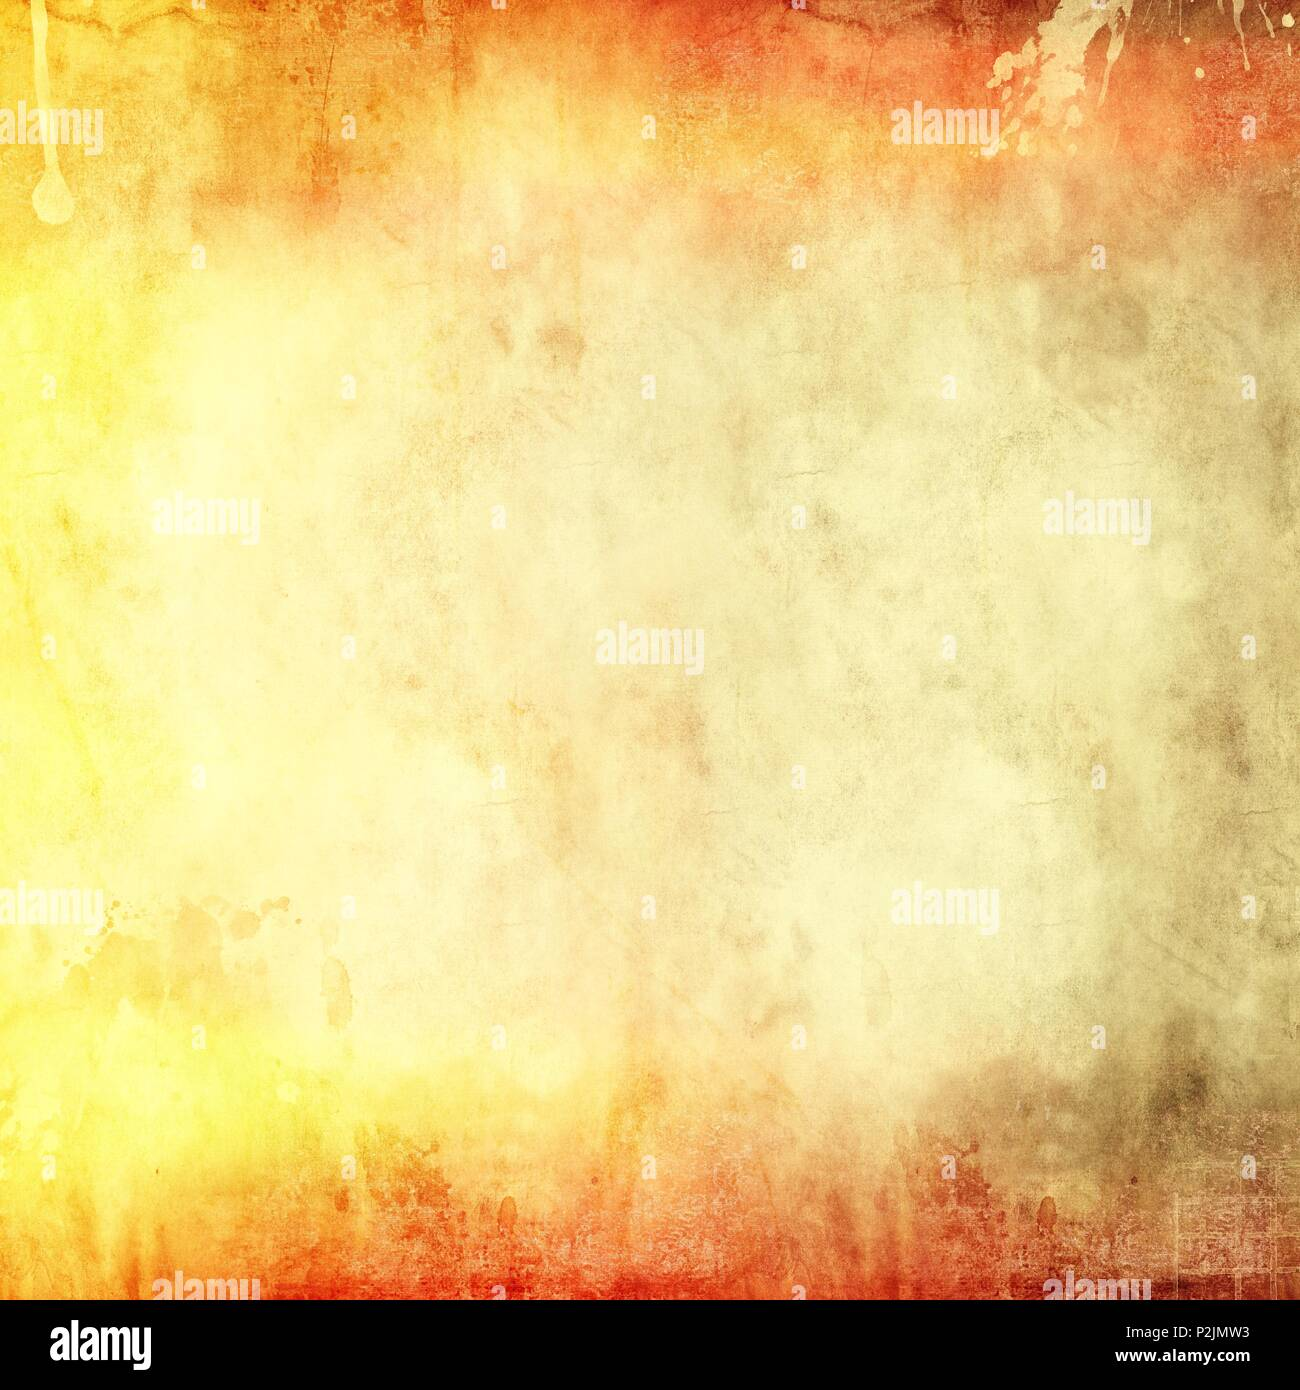 Vintage paper texture background. Red and yellow tones. - Stock Image